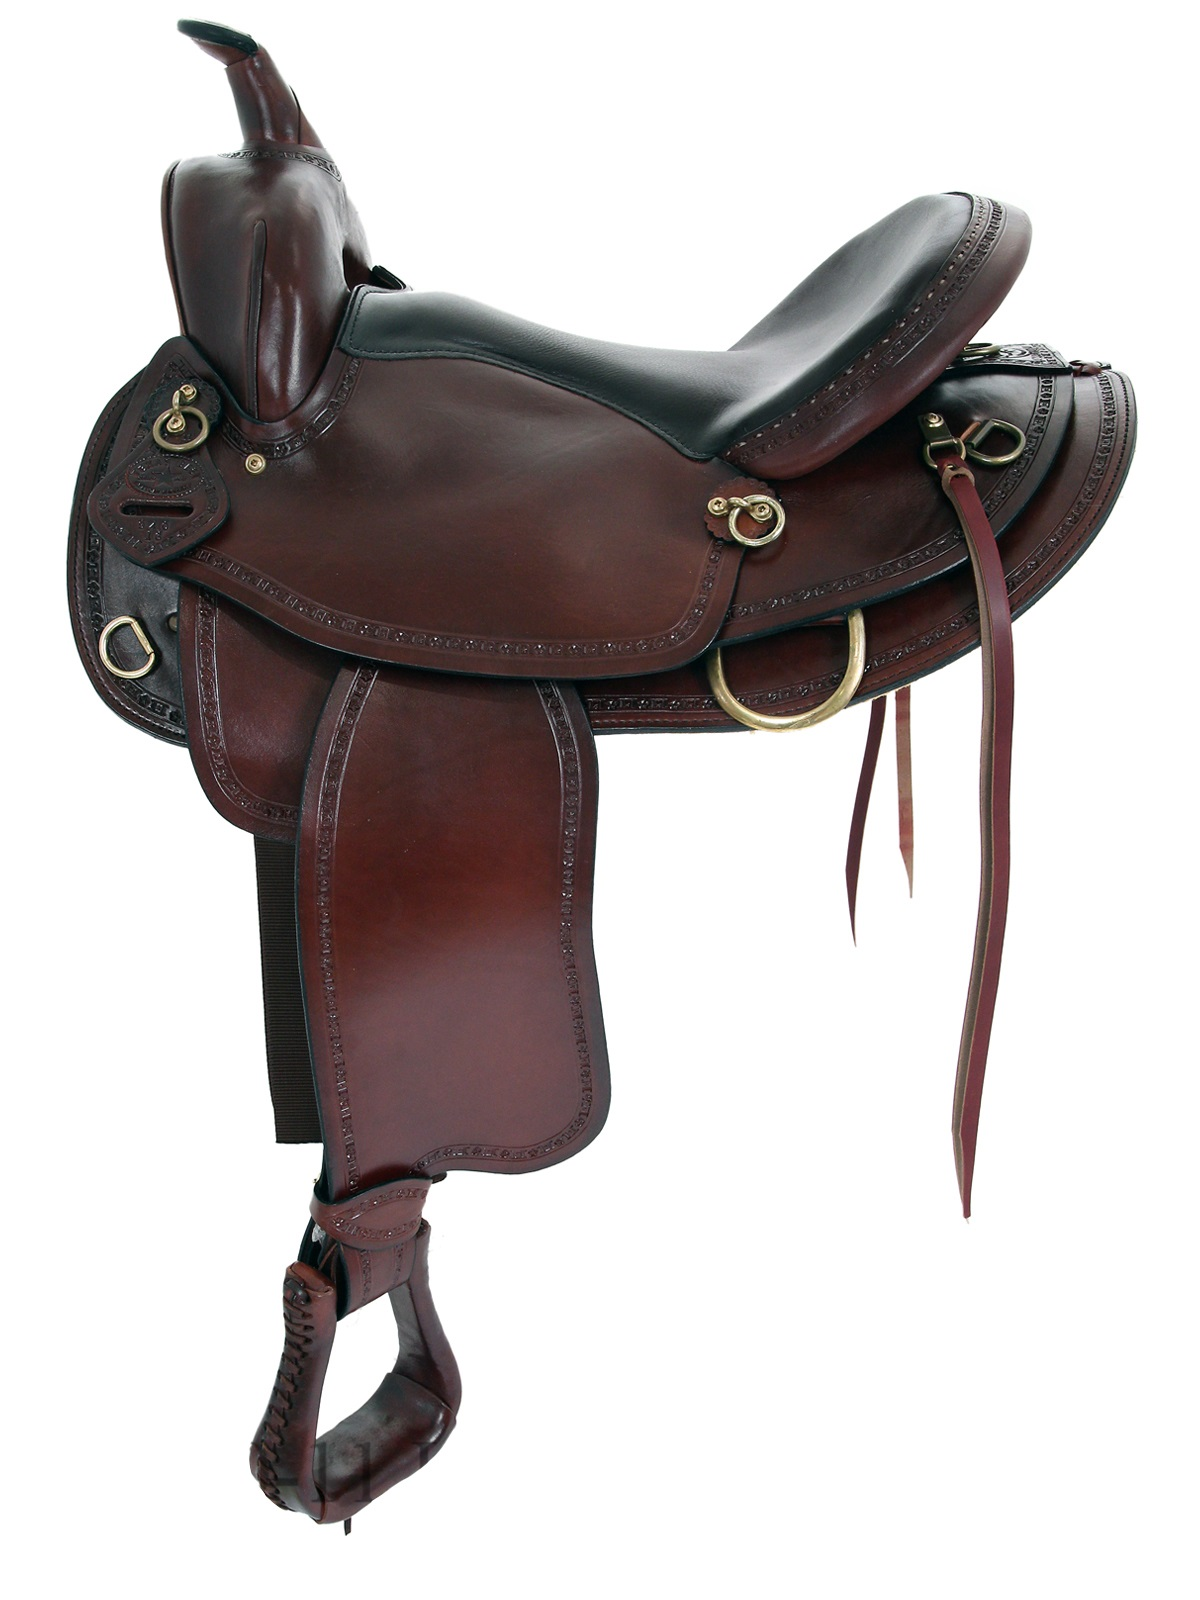 16inch 17inch Big Horn Texas Best Hill Country Mule Trail II Saddle